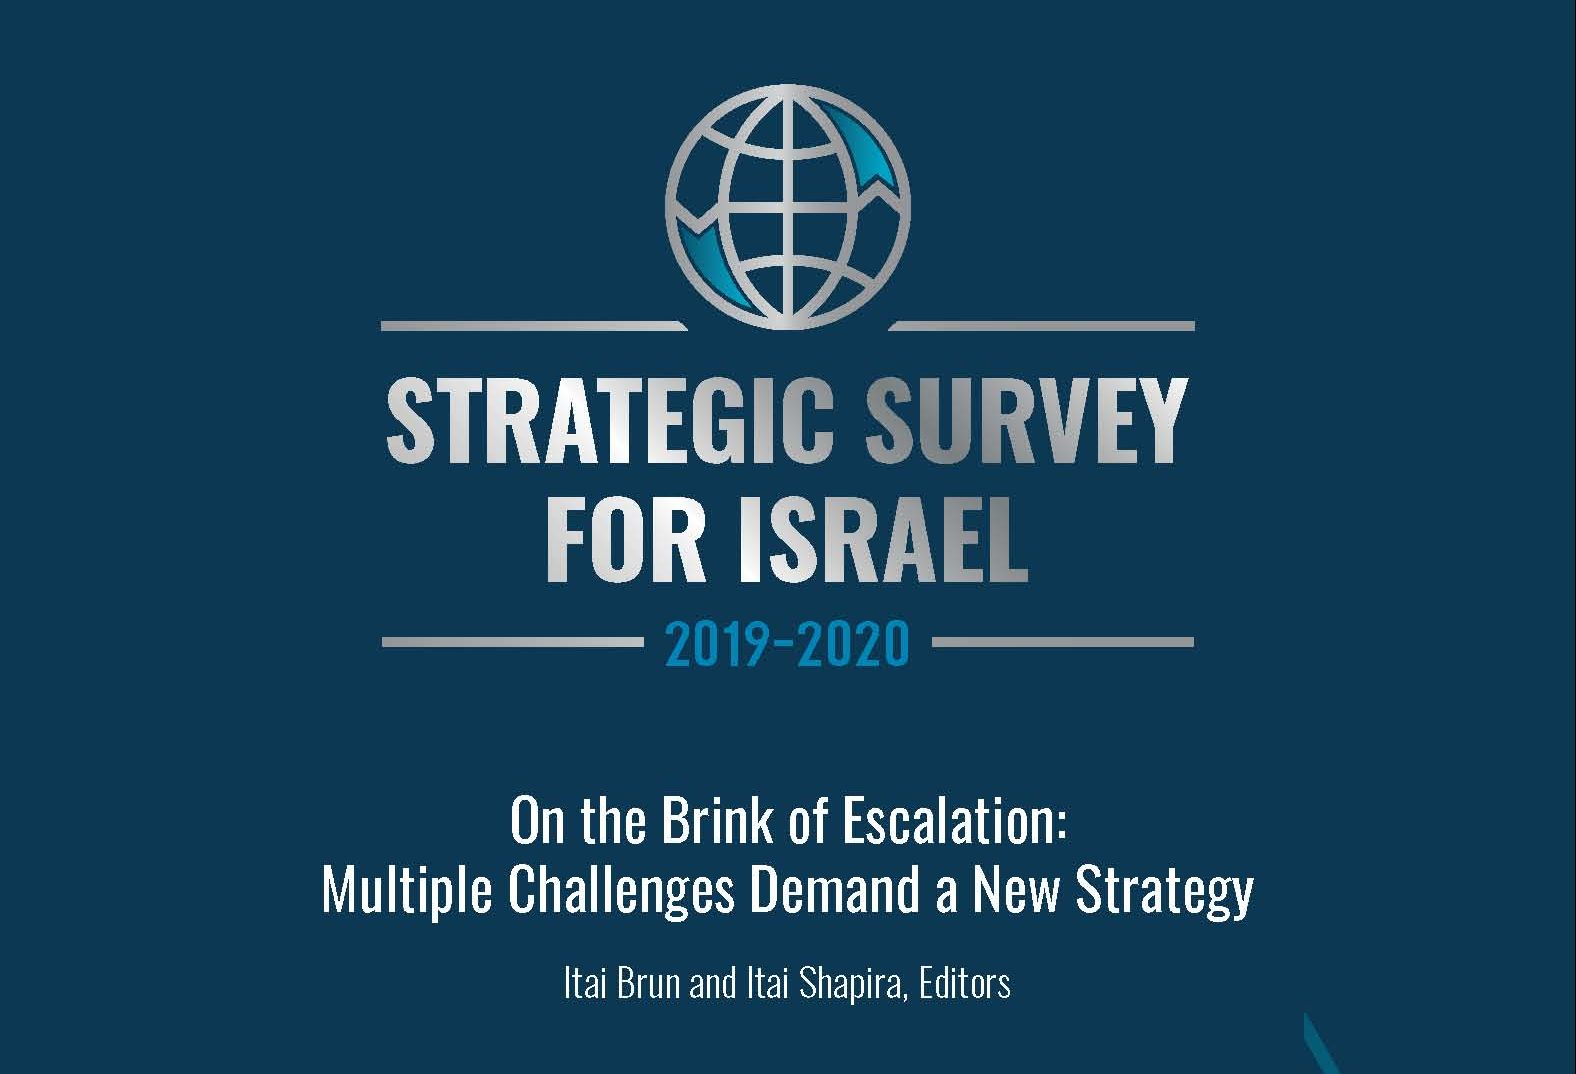 STRATEGIC-SURVEY-FOR-ISRAEL-2019-2020